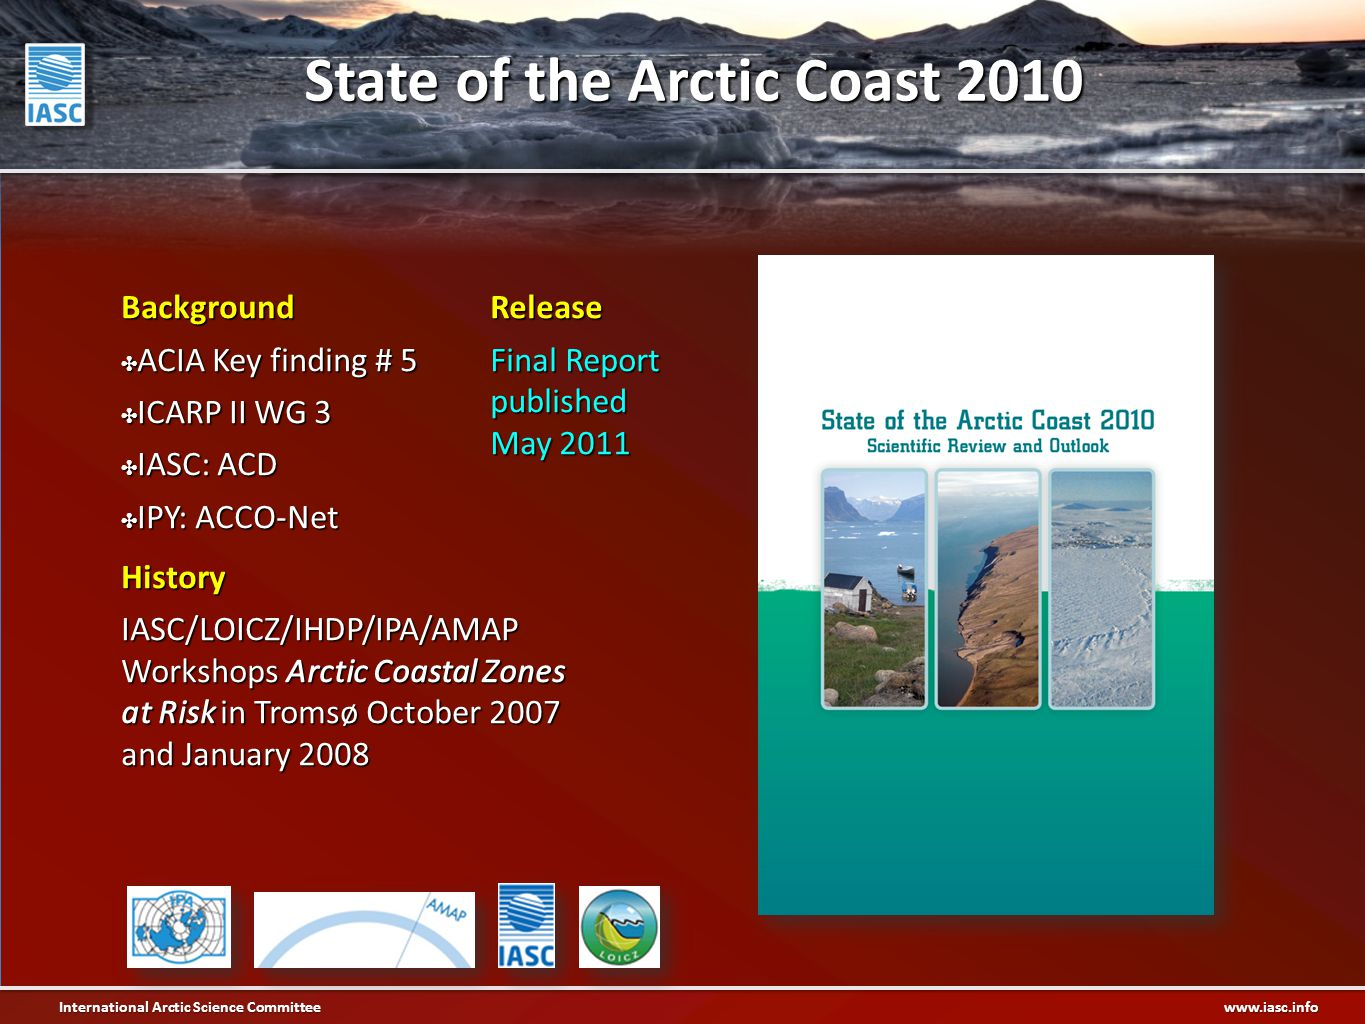 International Arctic Science Committee www.iasc.info Background ✤ ACIA Key finding # 5 ✤ ICARP II WG 3 ✤ IASC: ACD ✤ IPY: ACCO-Net History IASC/LOICZ/IHDP/IPA/AMAP Workshops Arctic Coastal Zones at Risk in Tromsø October 2007 and January 2008 Release Final Report published May 2011 State of the Arctic Coast 2010